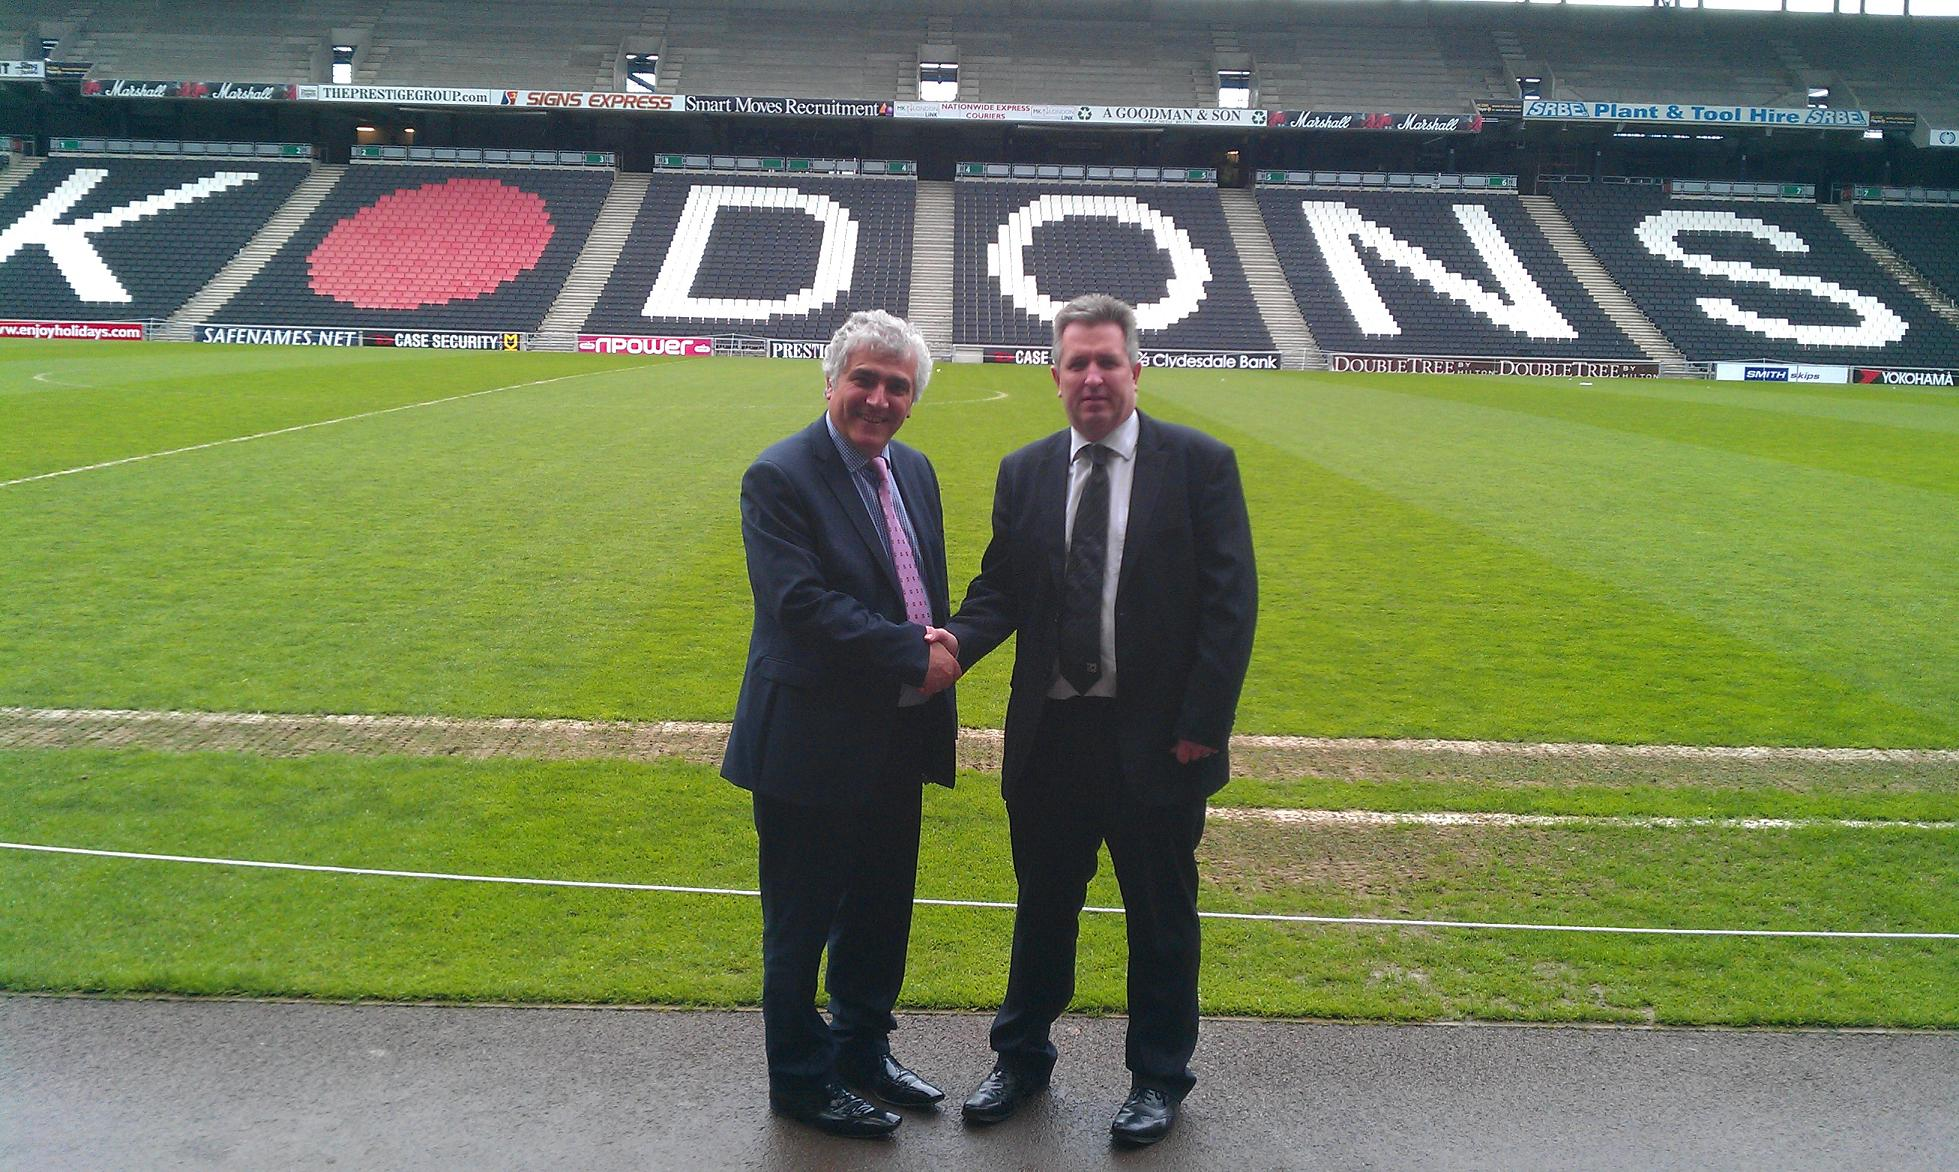 Merton Council's leader, Stephen Alambritis (left) with Milton Keynes Council leader, Andrew Geary, at Stadium mk